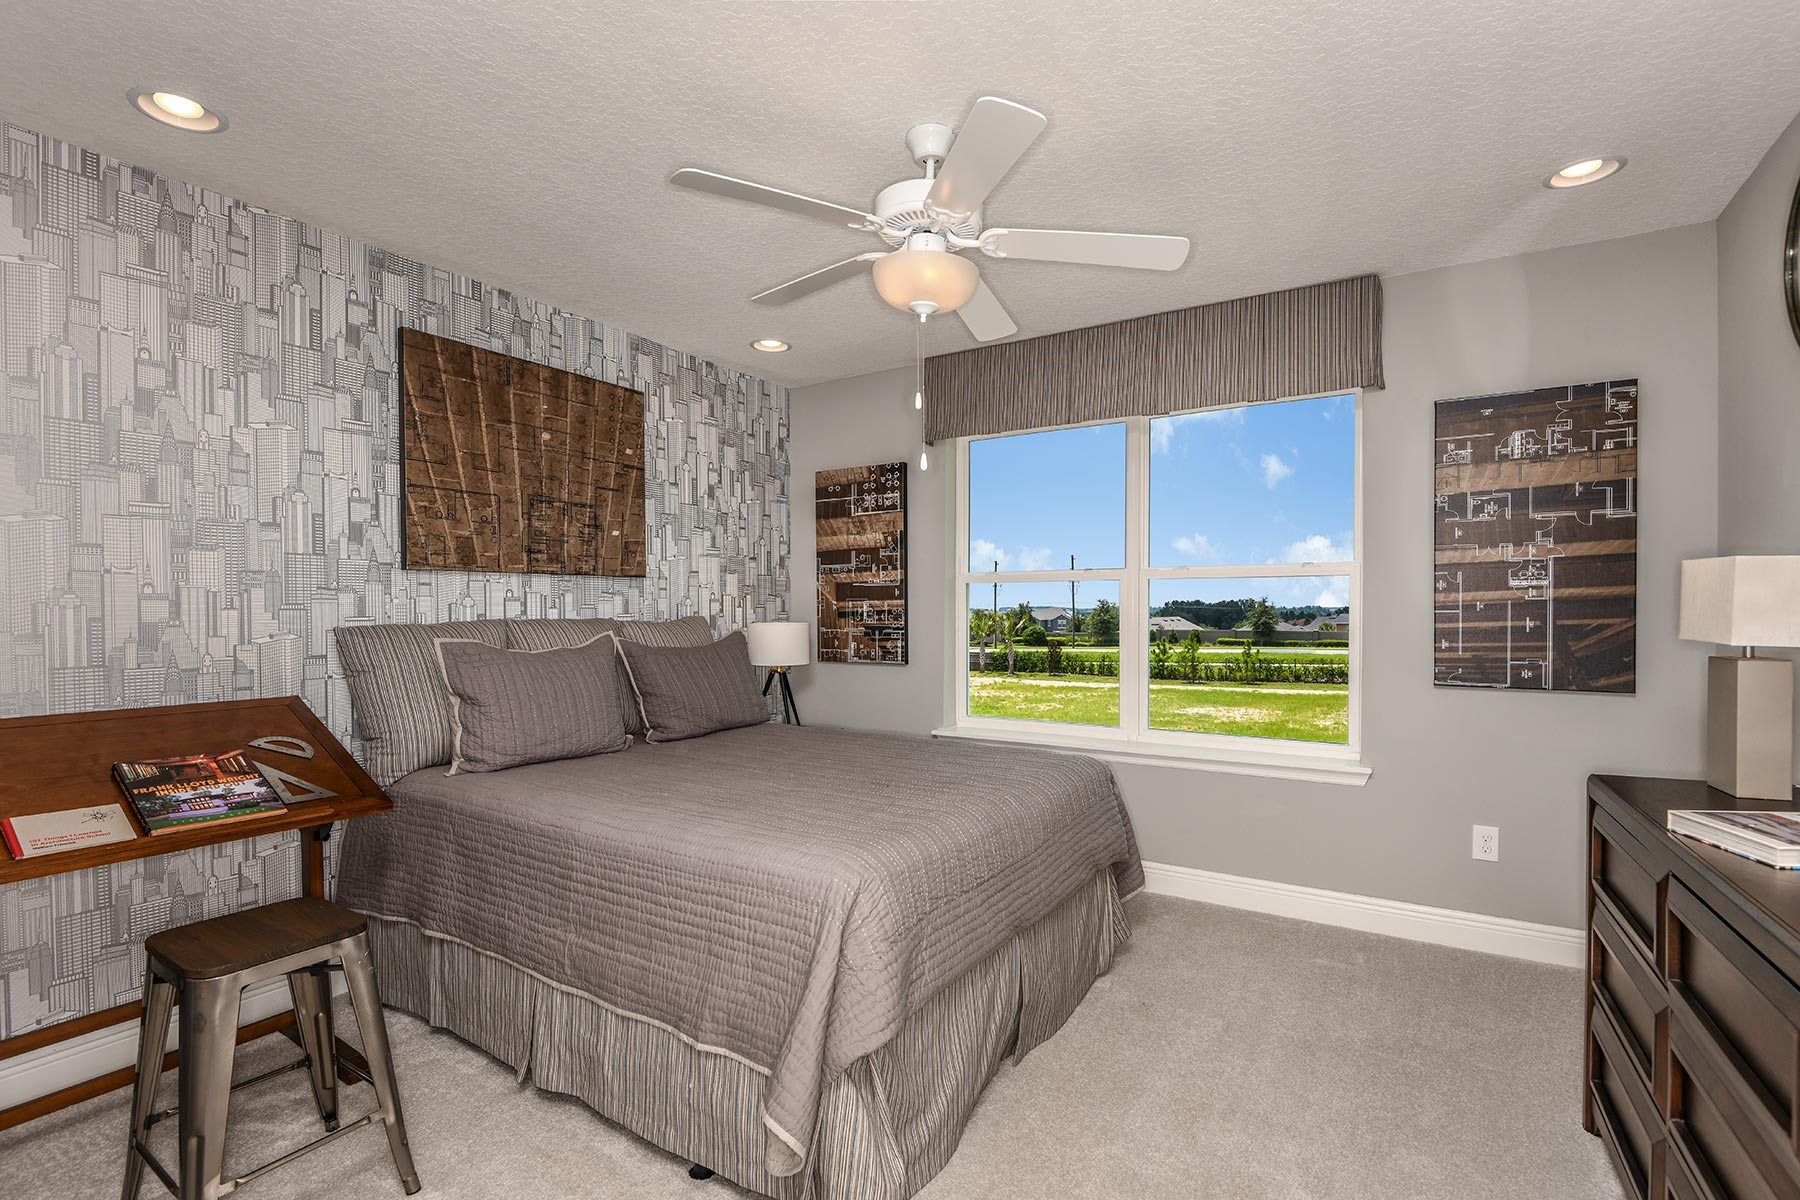 Riverside II Plan Bedroom at Meridian Parks in Orlando Florida by Mattamy Homes